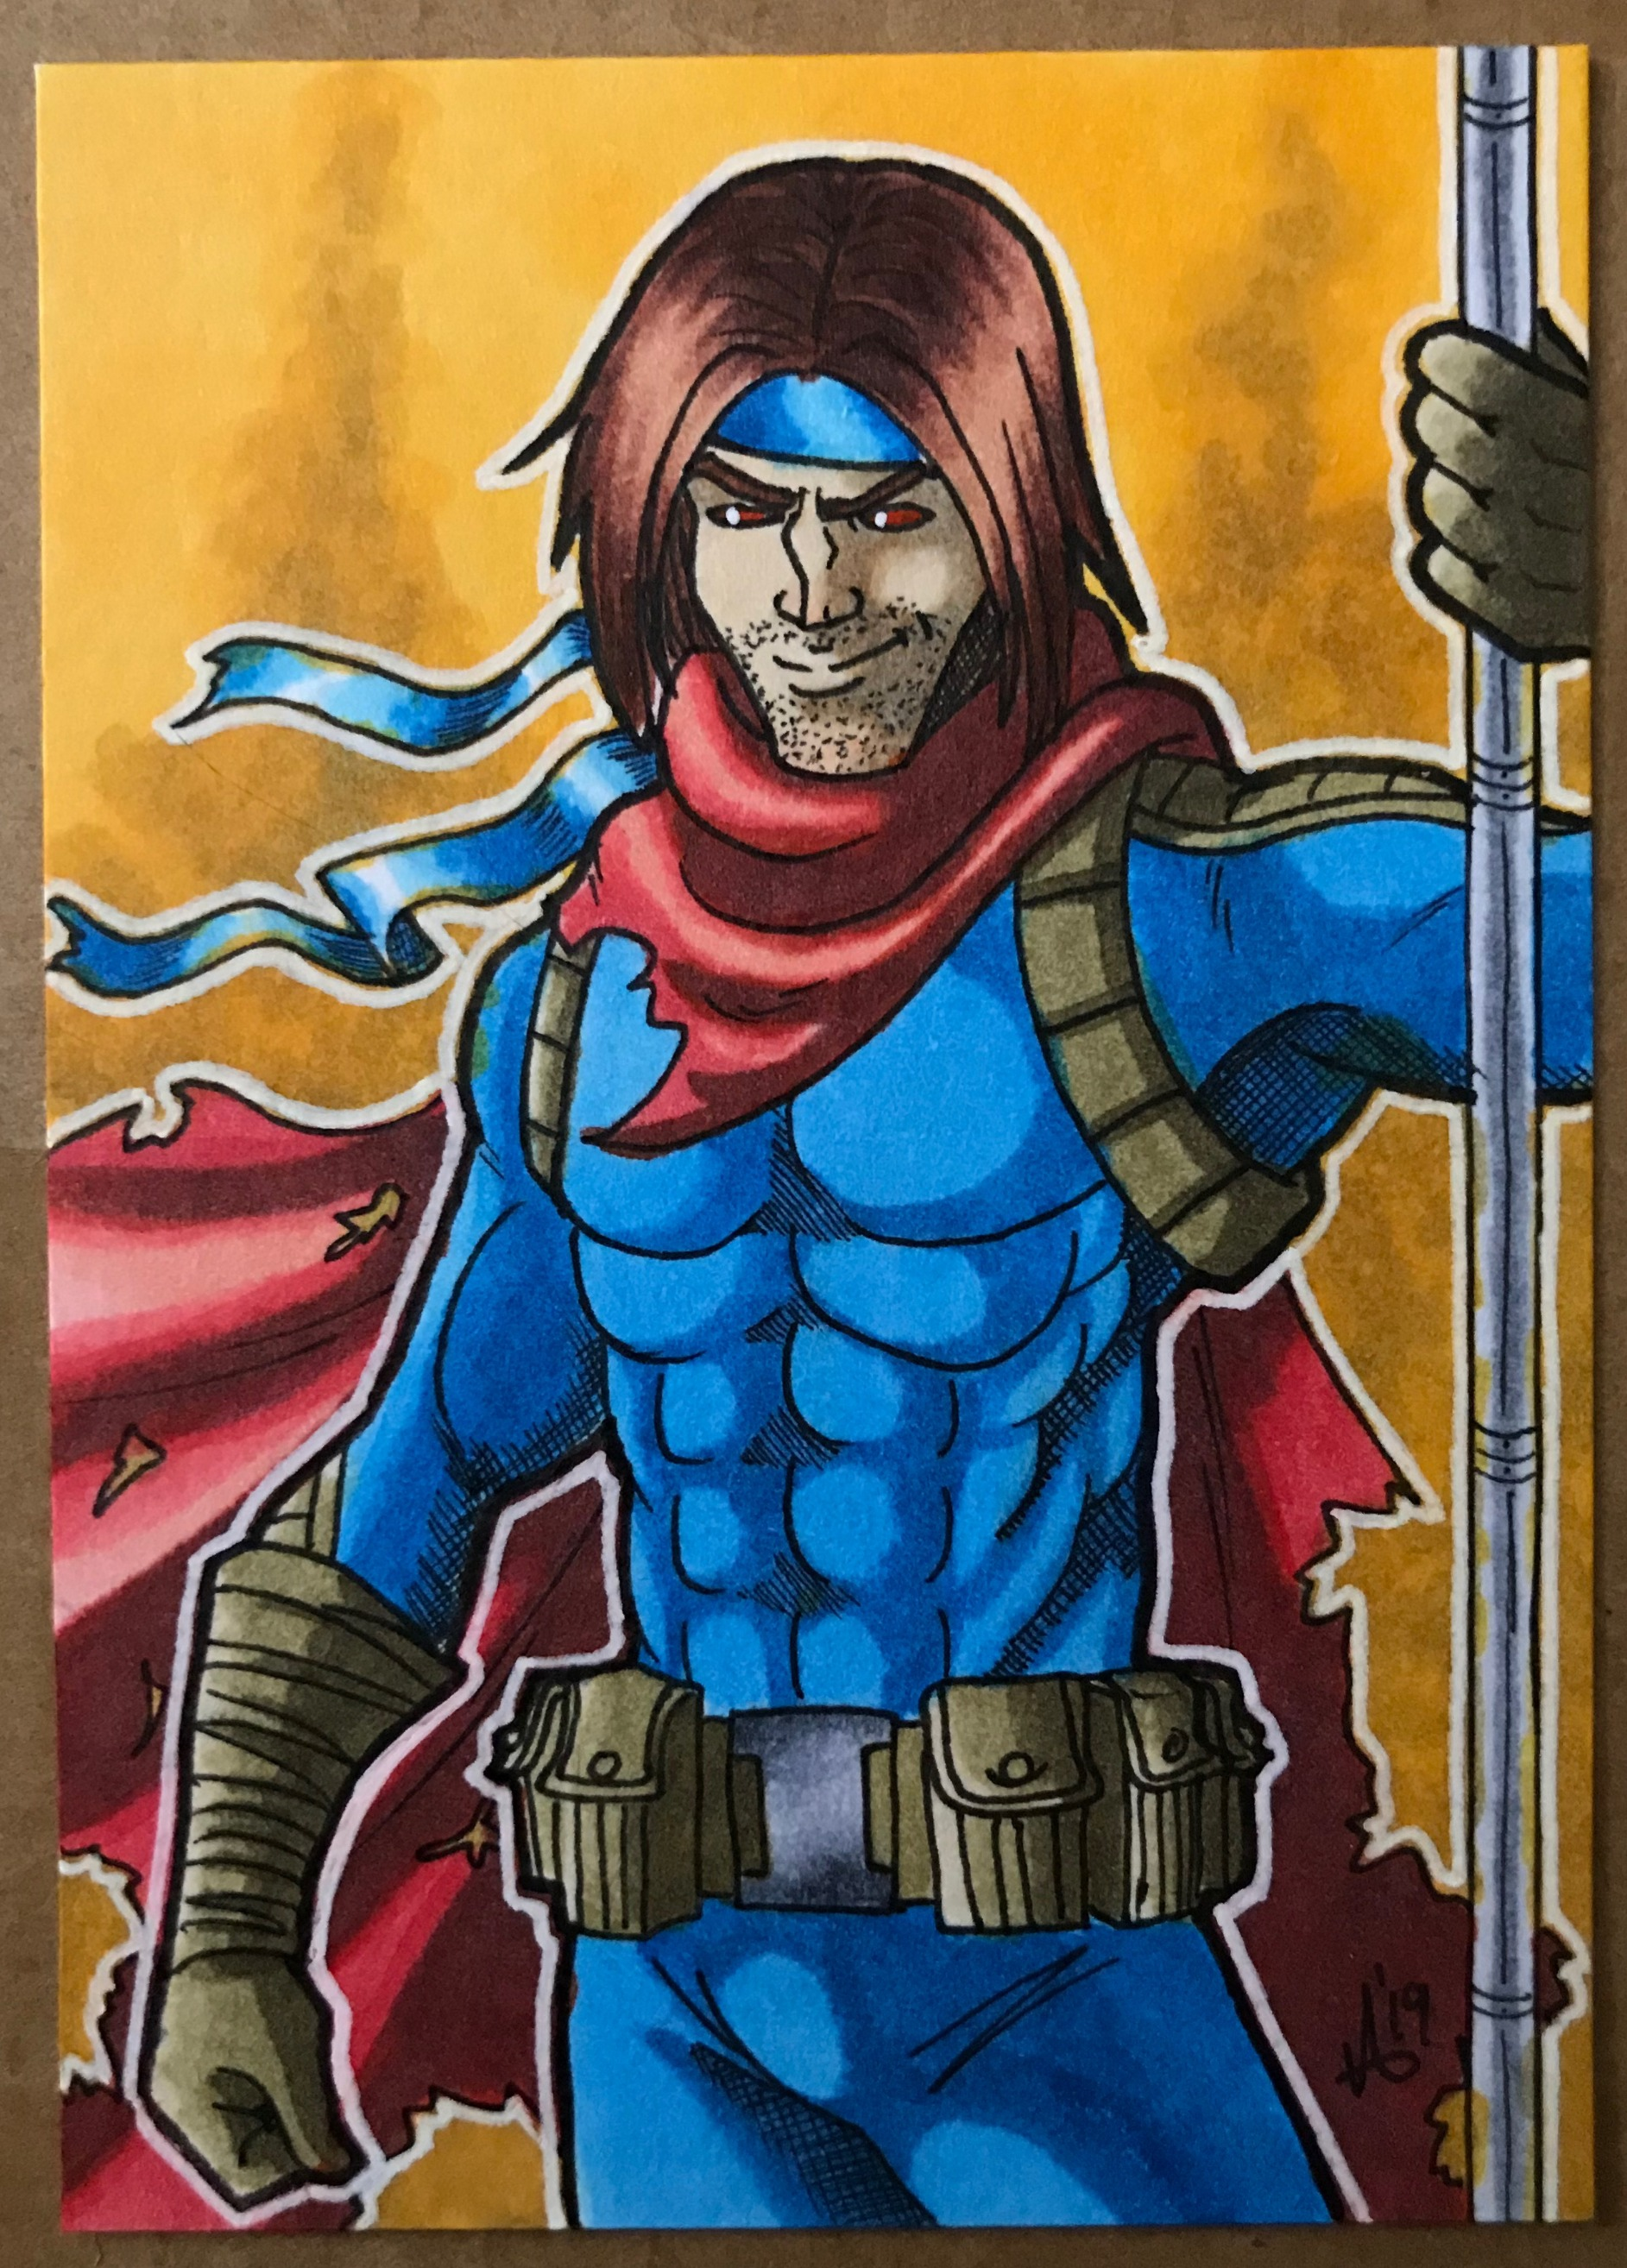 AoA Gambit - Art and color by Riley Reyer